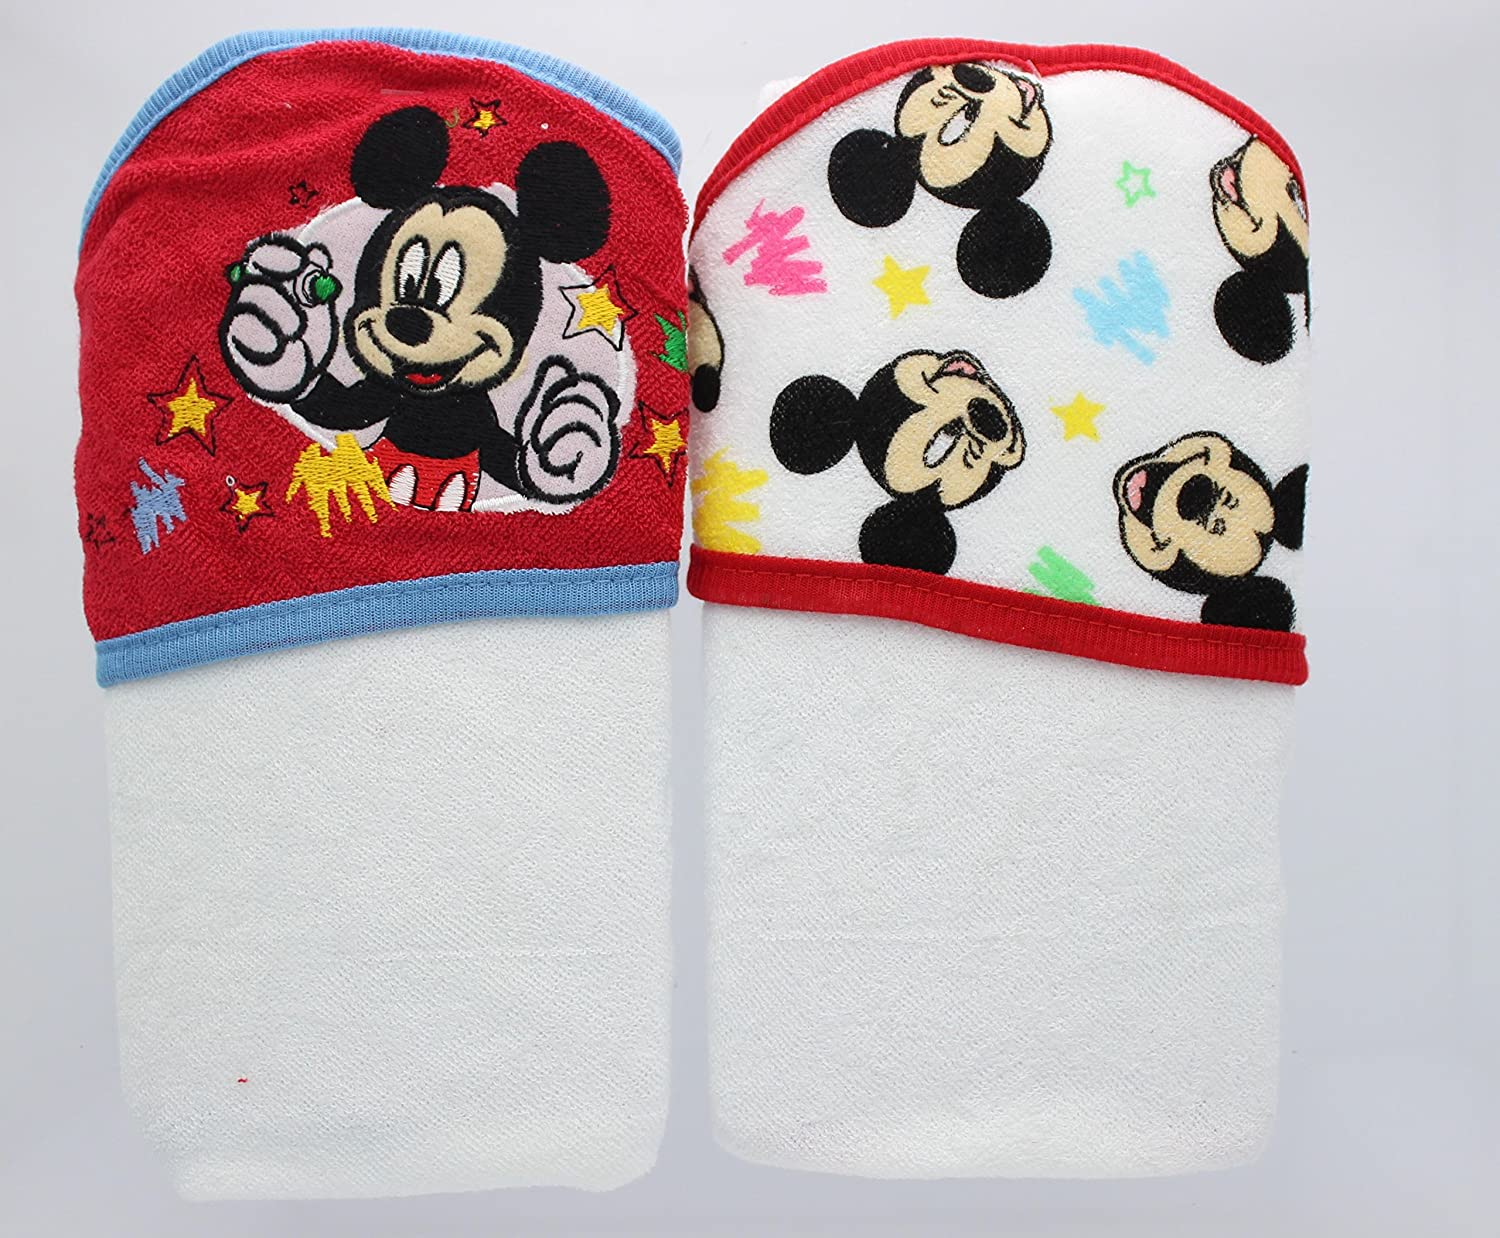 Disney 2 Piece Hooded Towel Set, Mickey Mouse GS70463